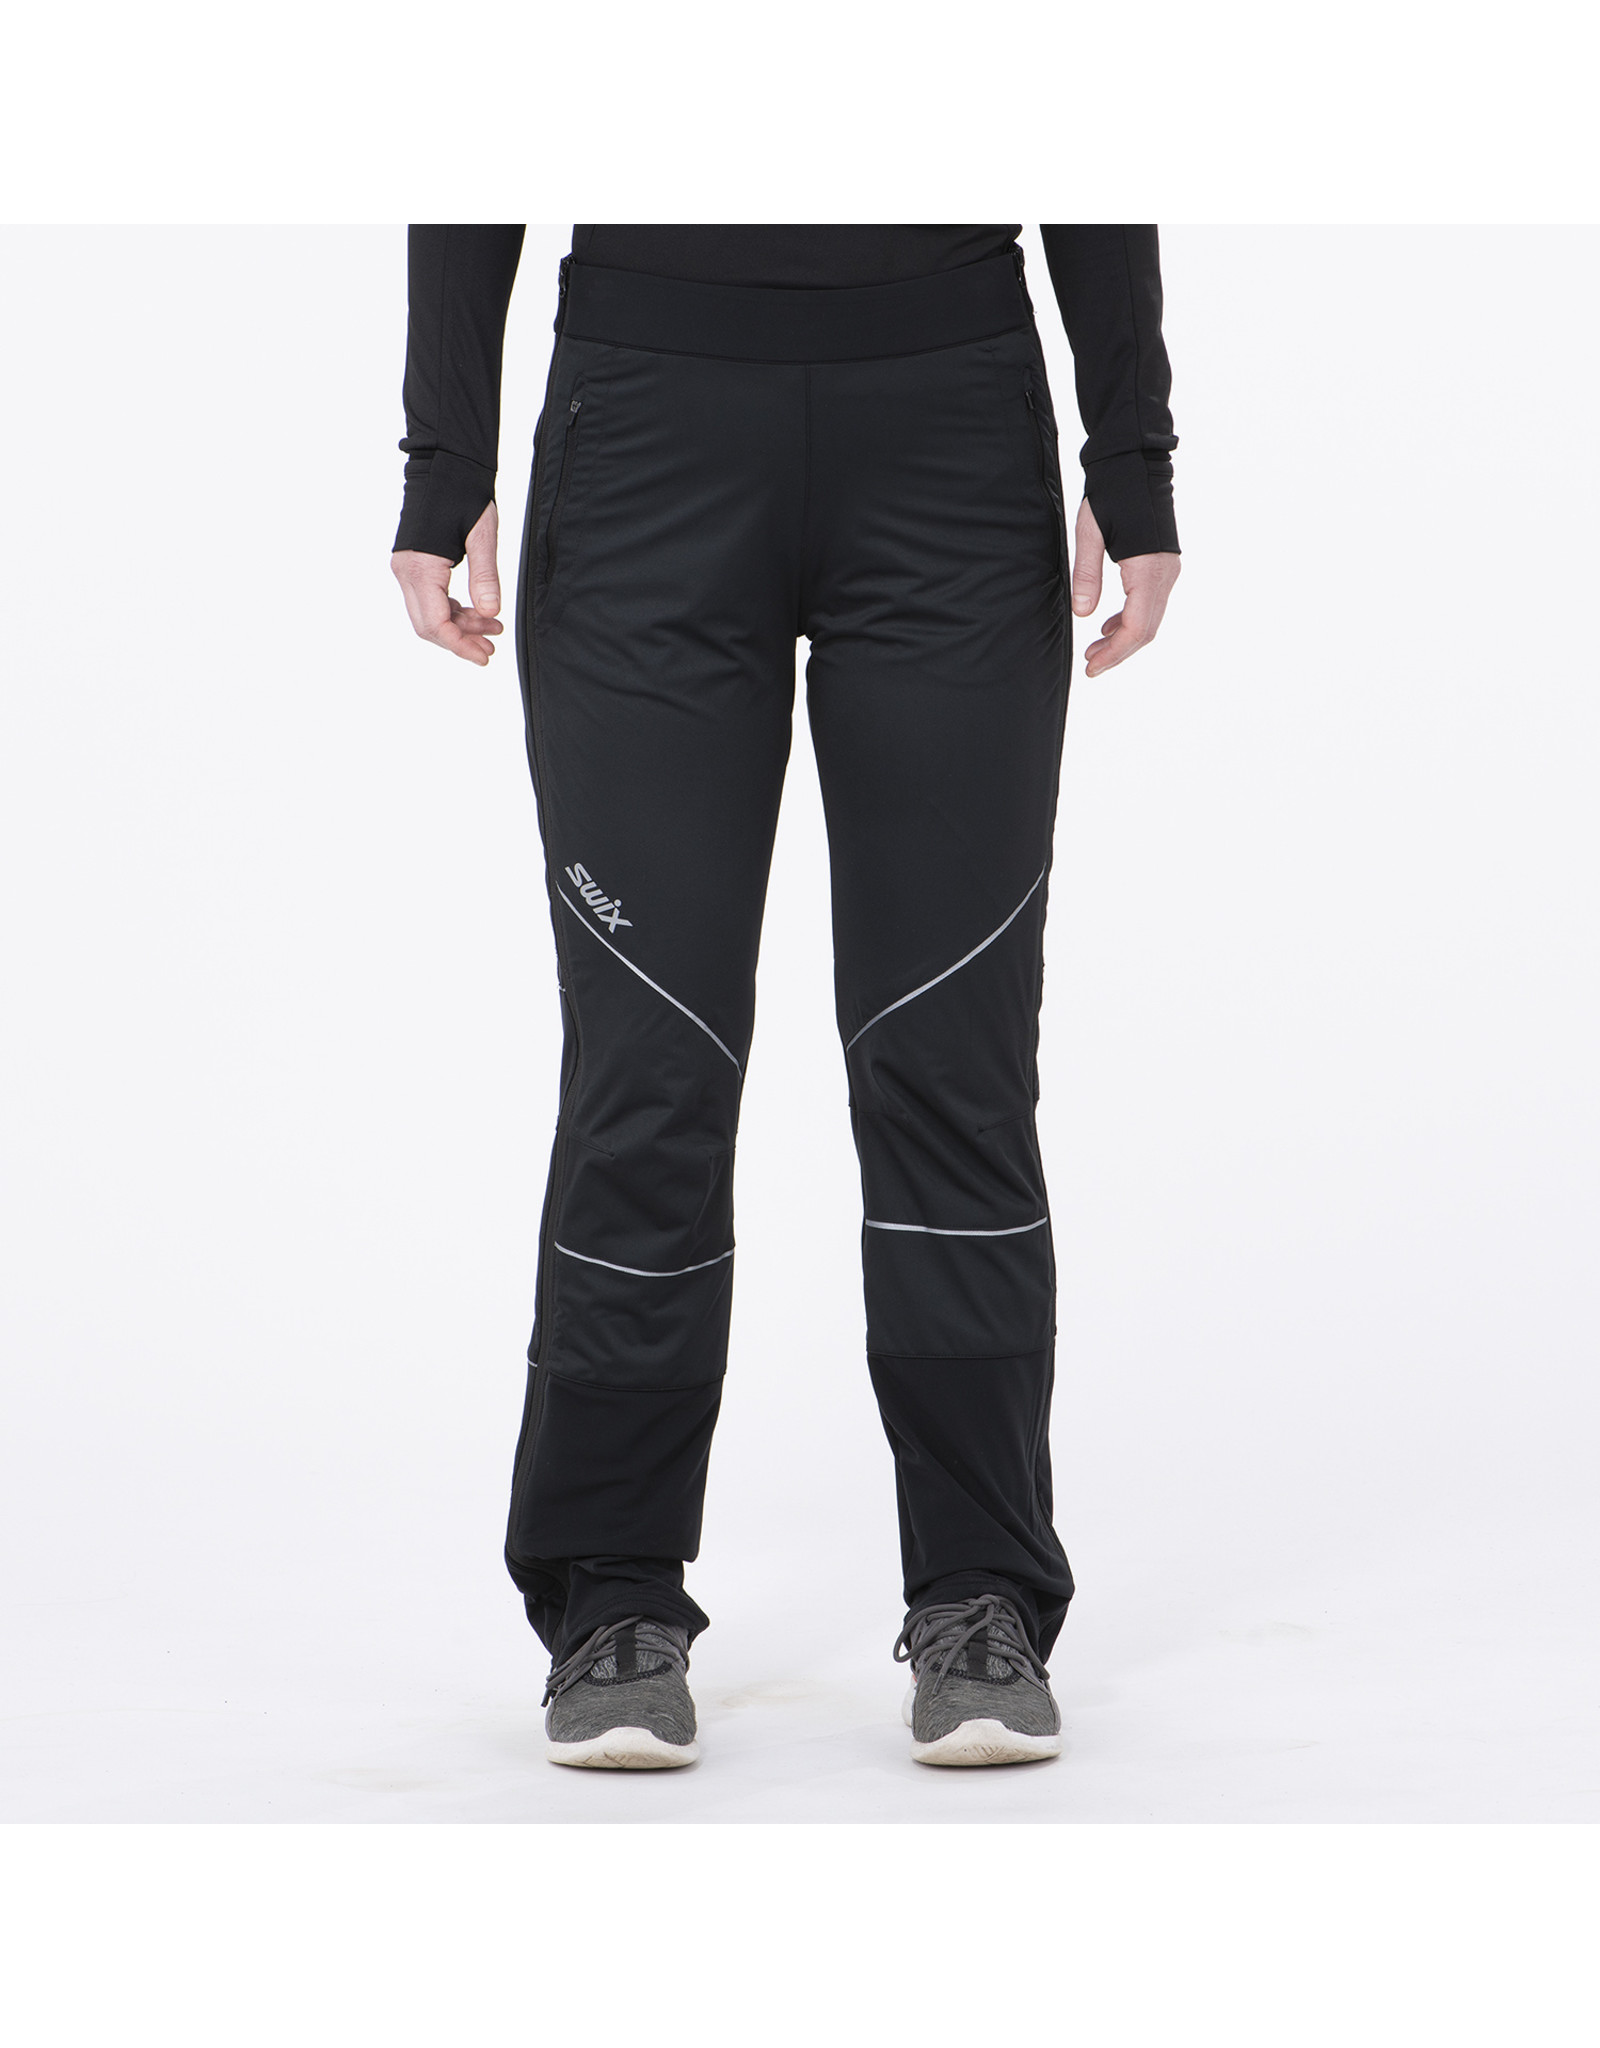 Swix Women's Bekke Tech Pant